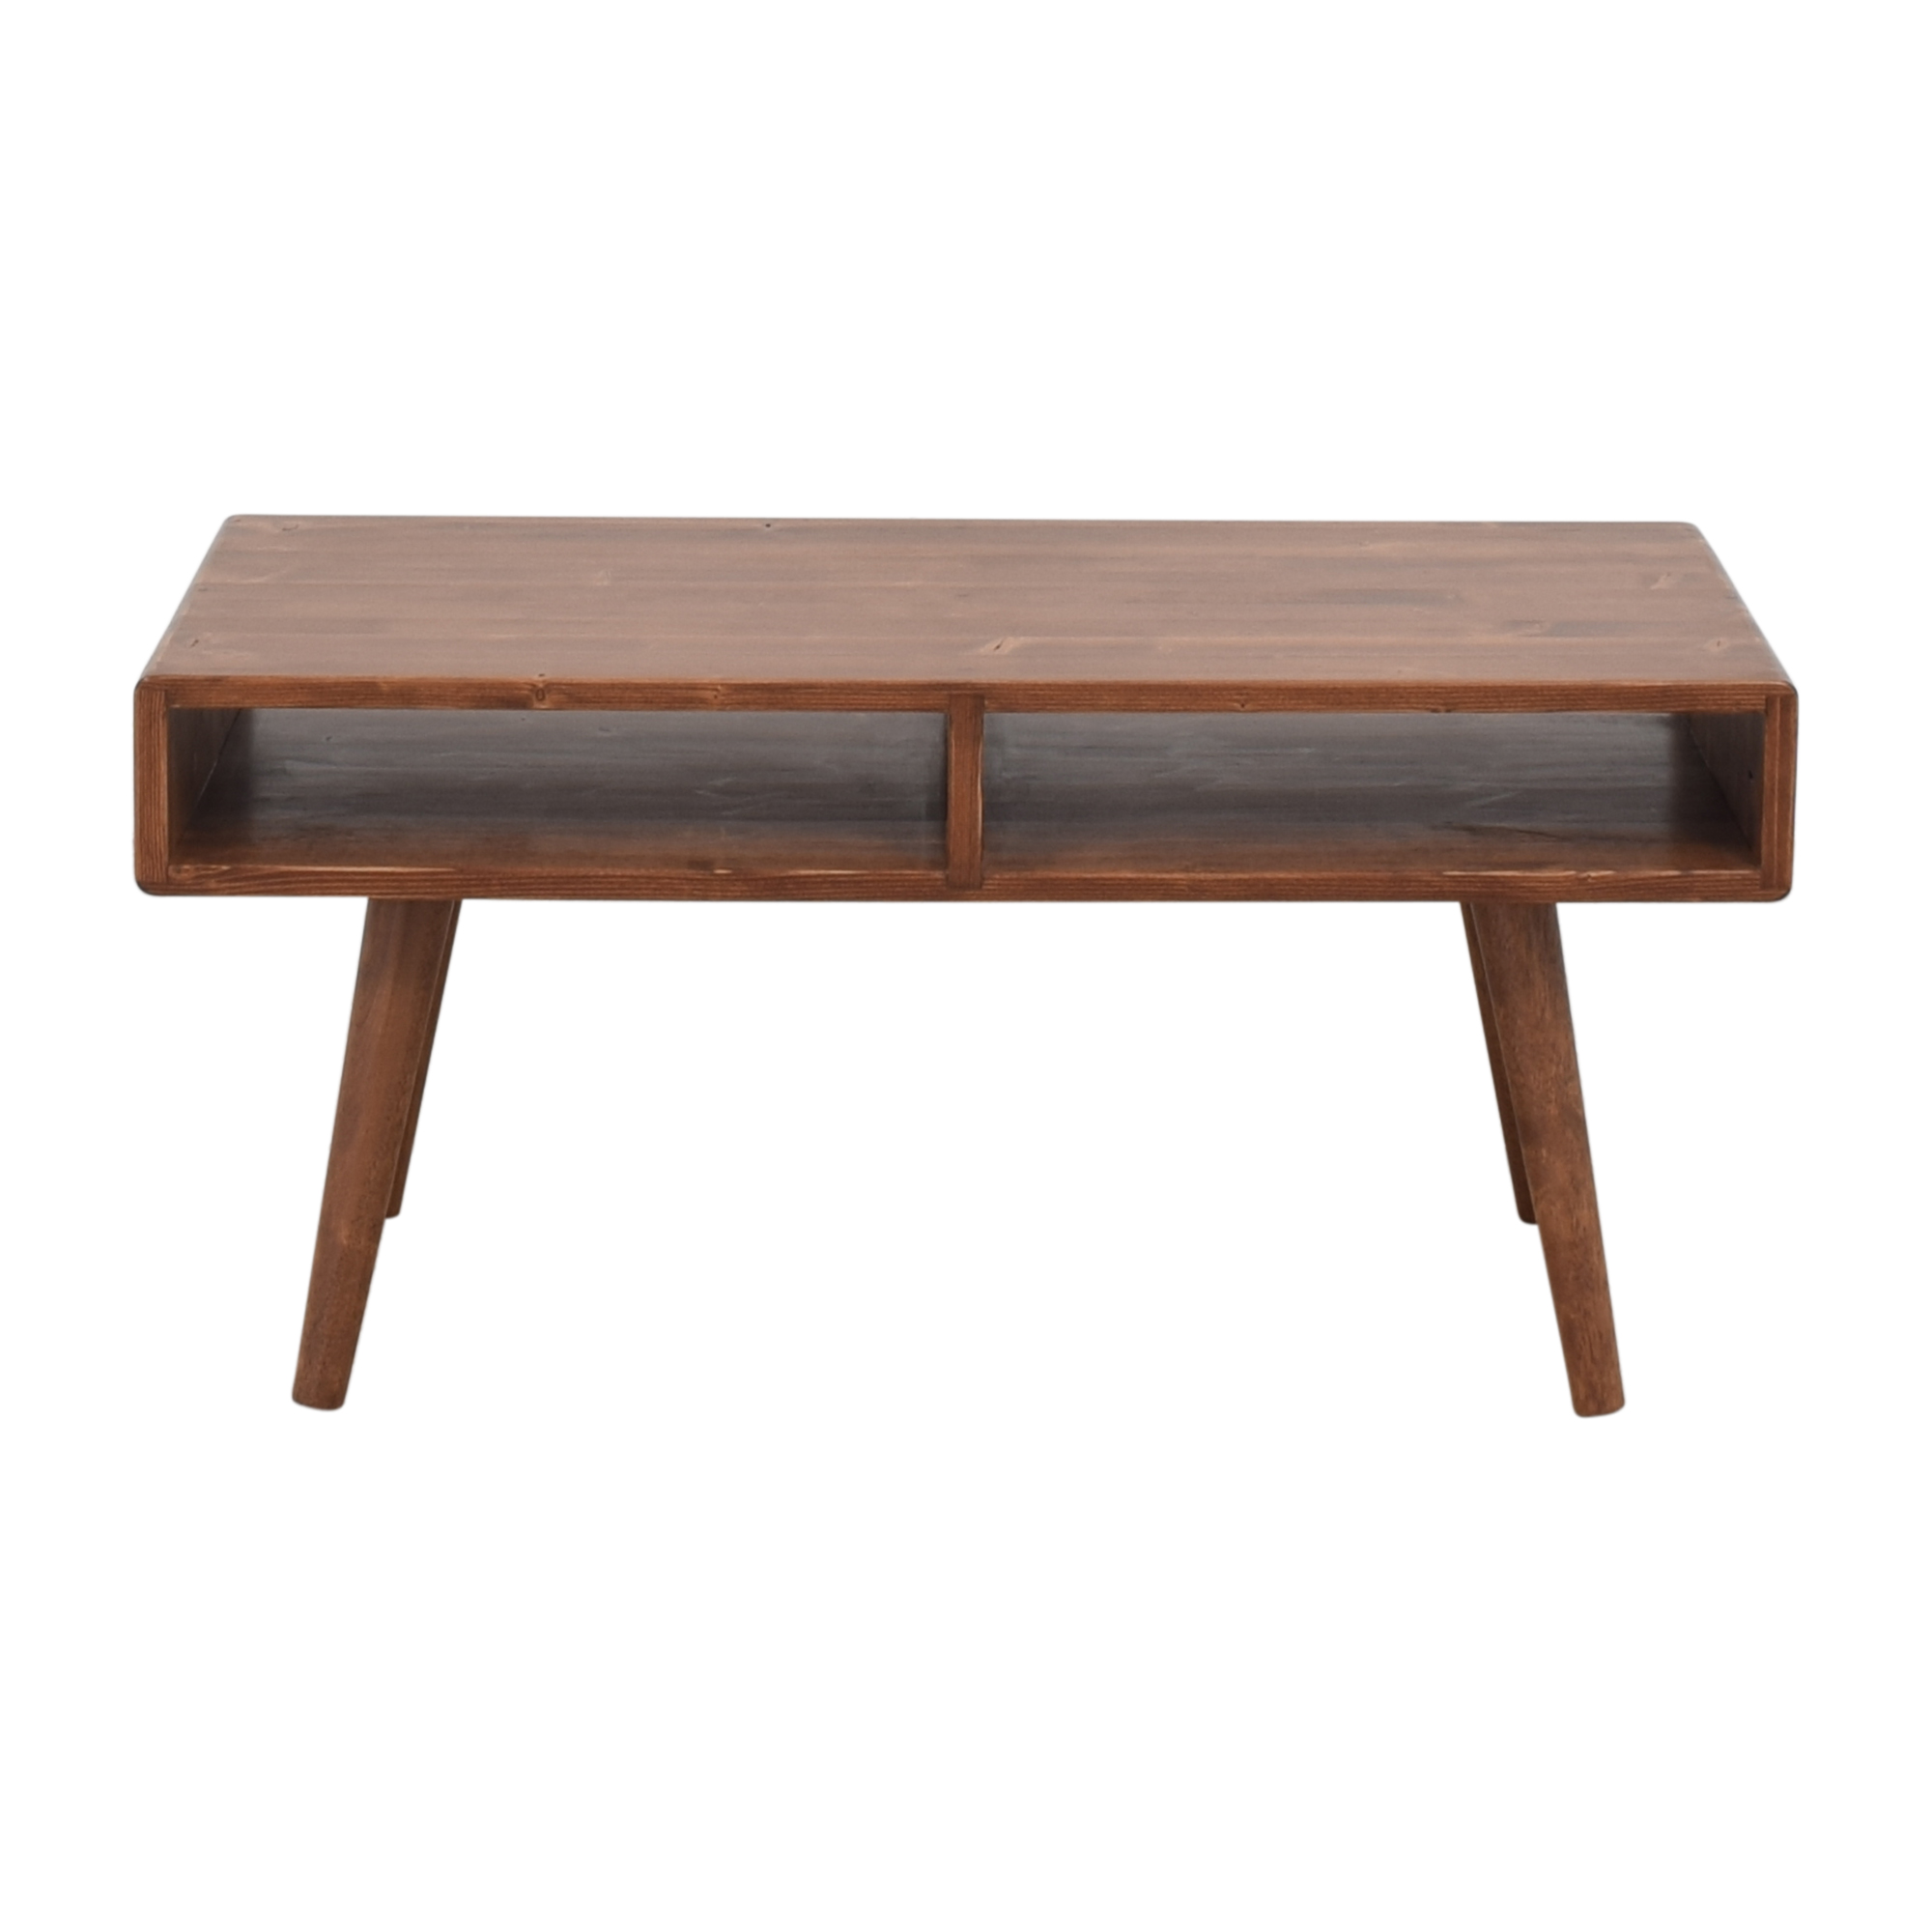 Etsy Etsy Mid Century Modern Coffee Table dimensions